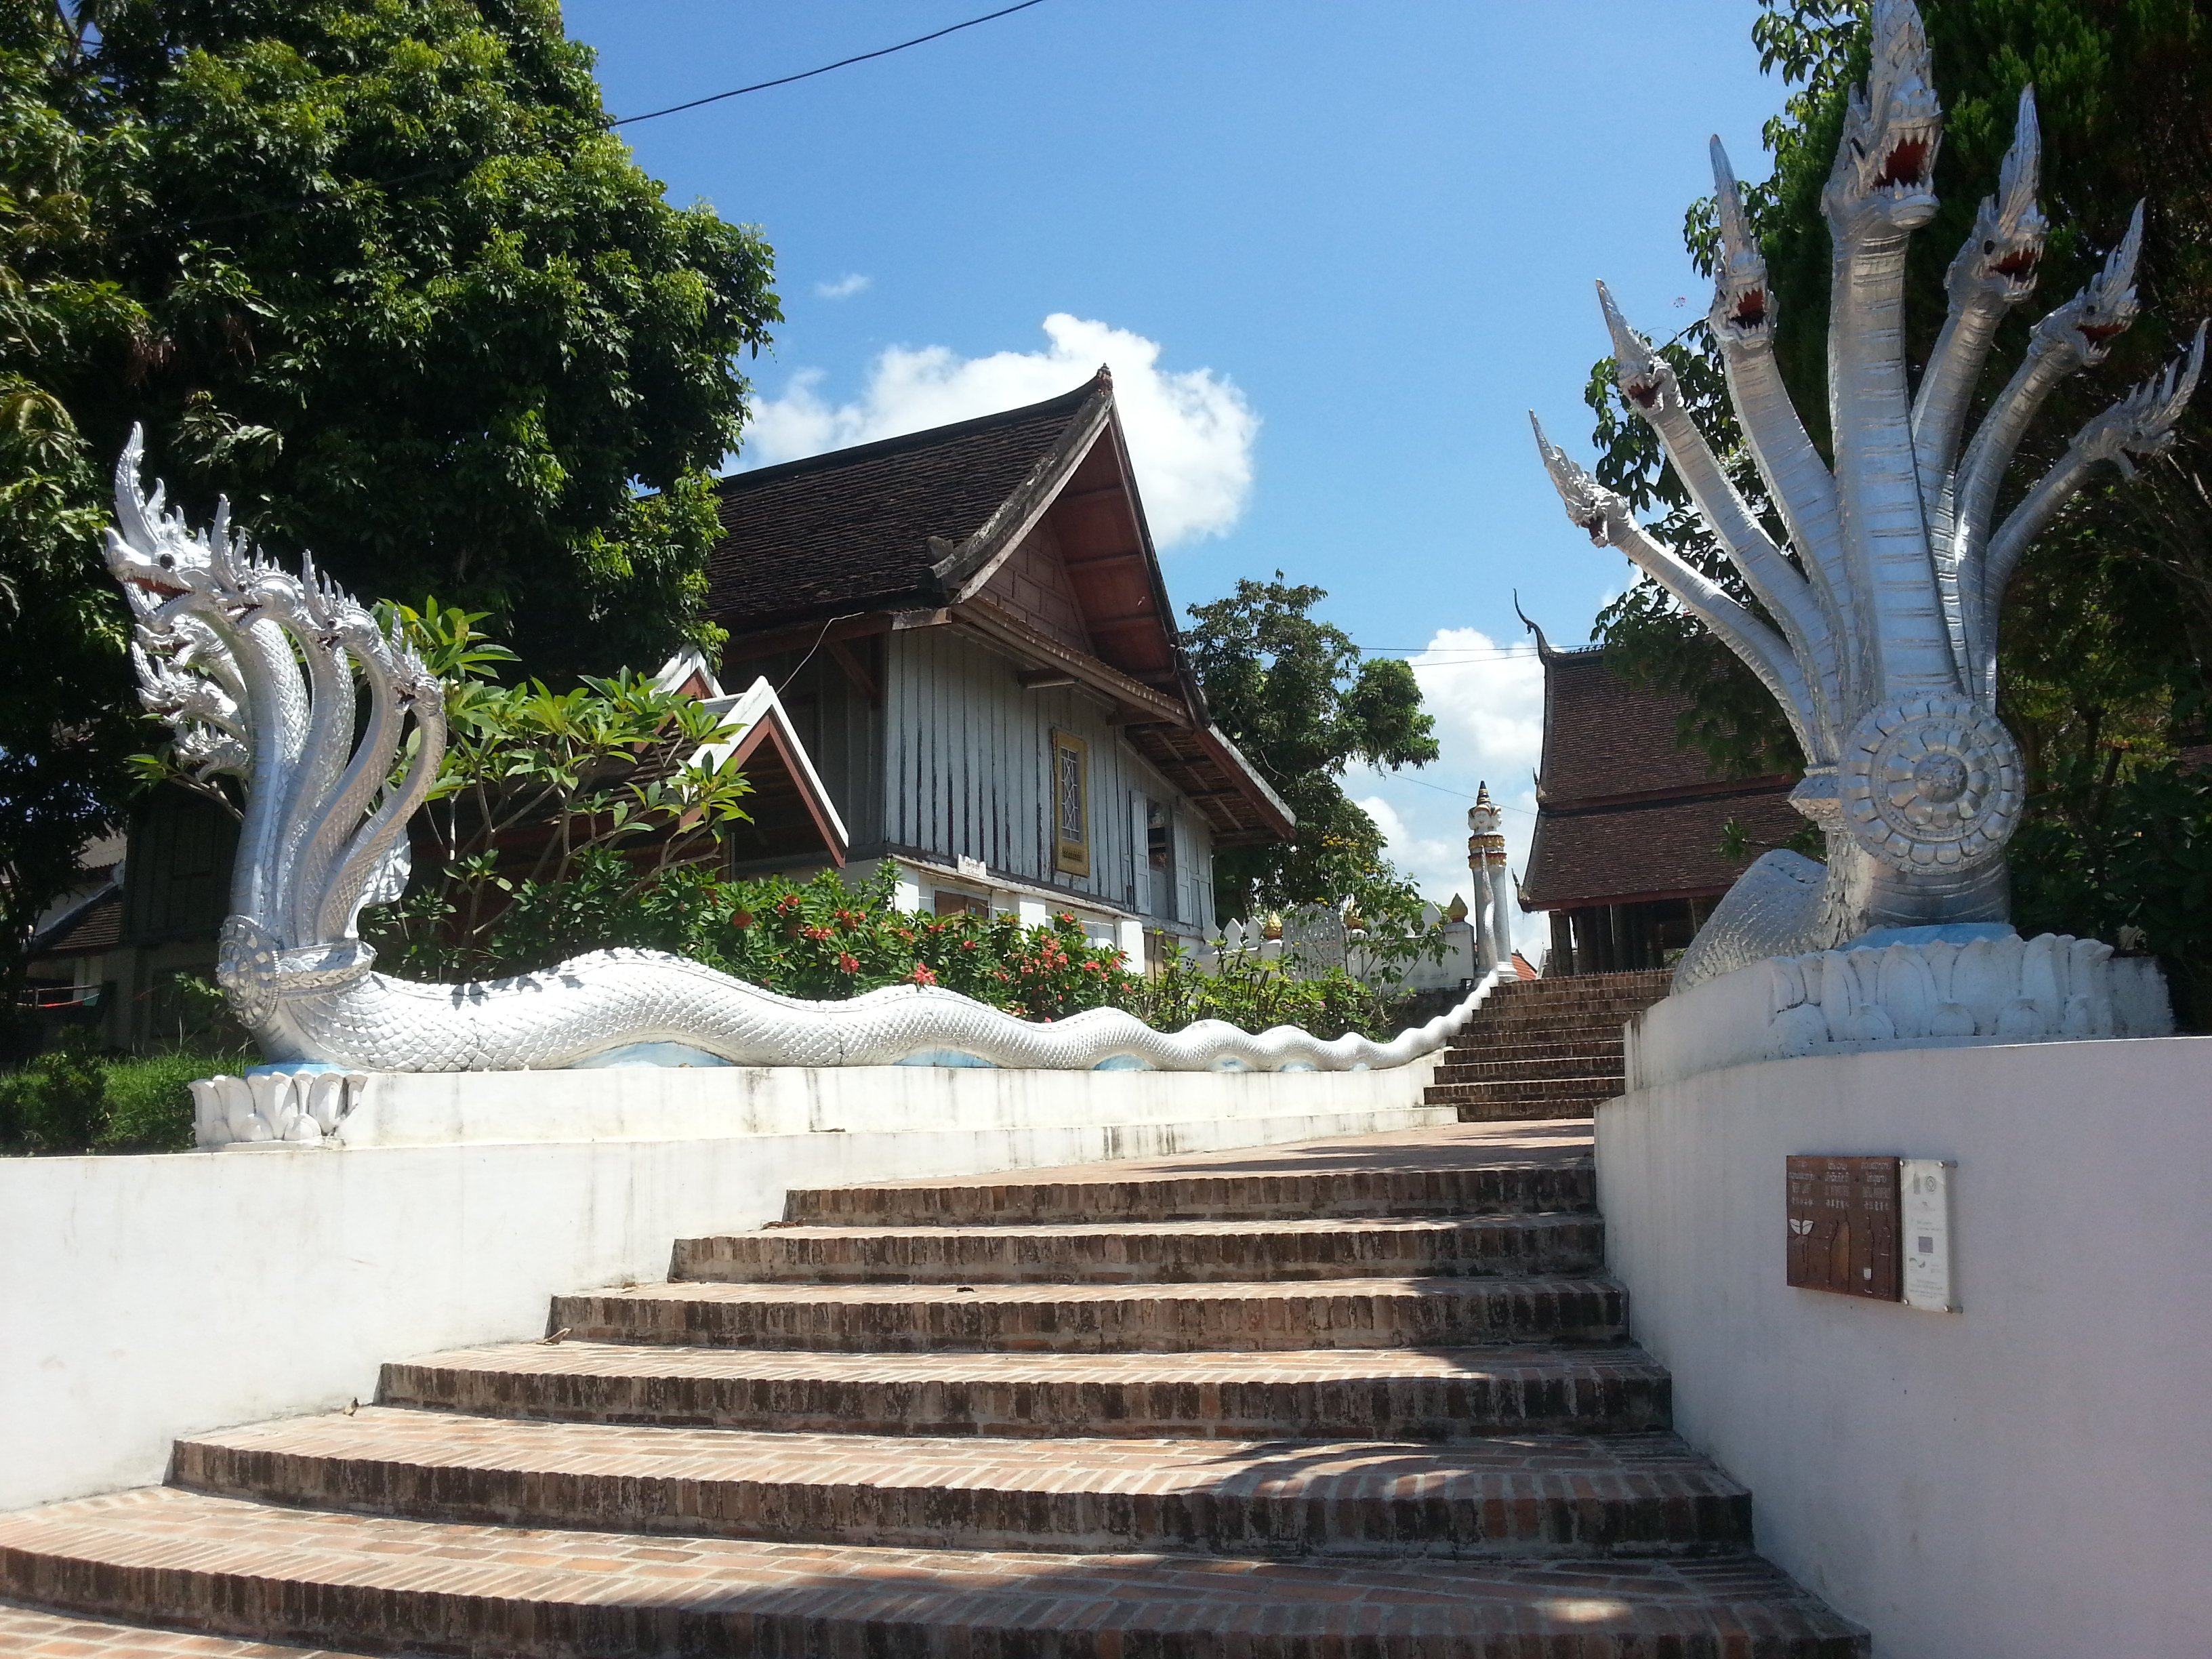 Staircase leading up to Wat Mahathat